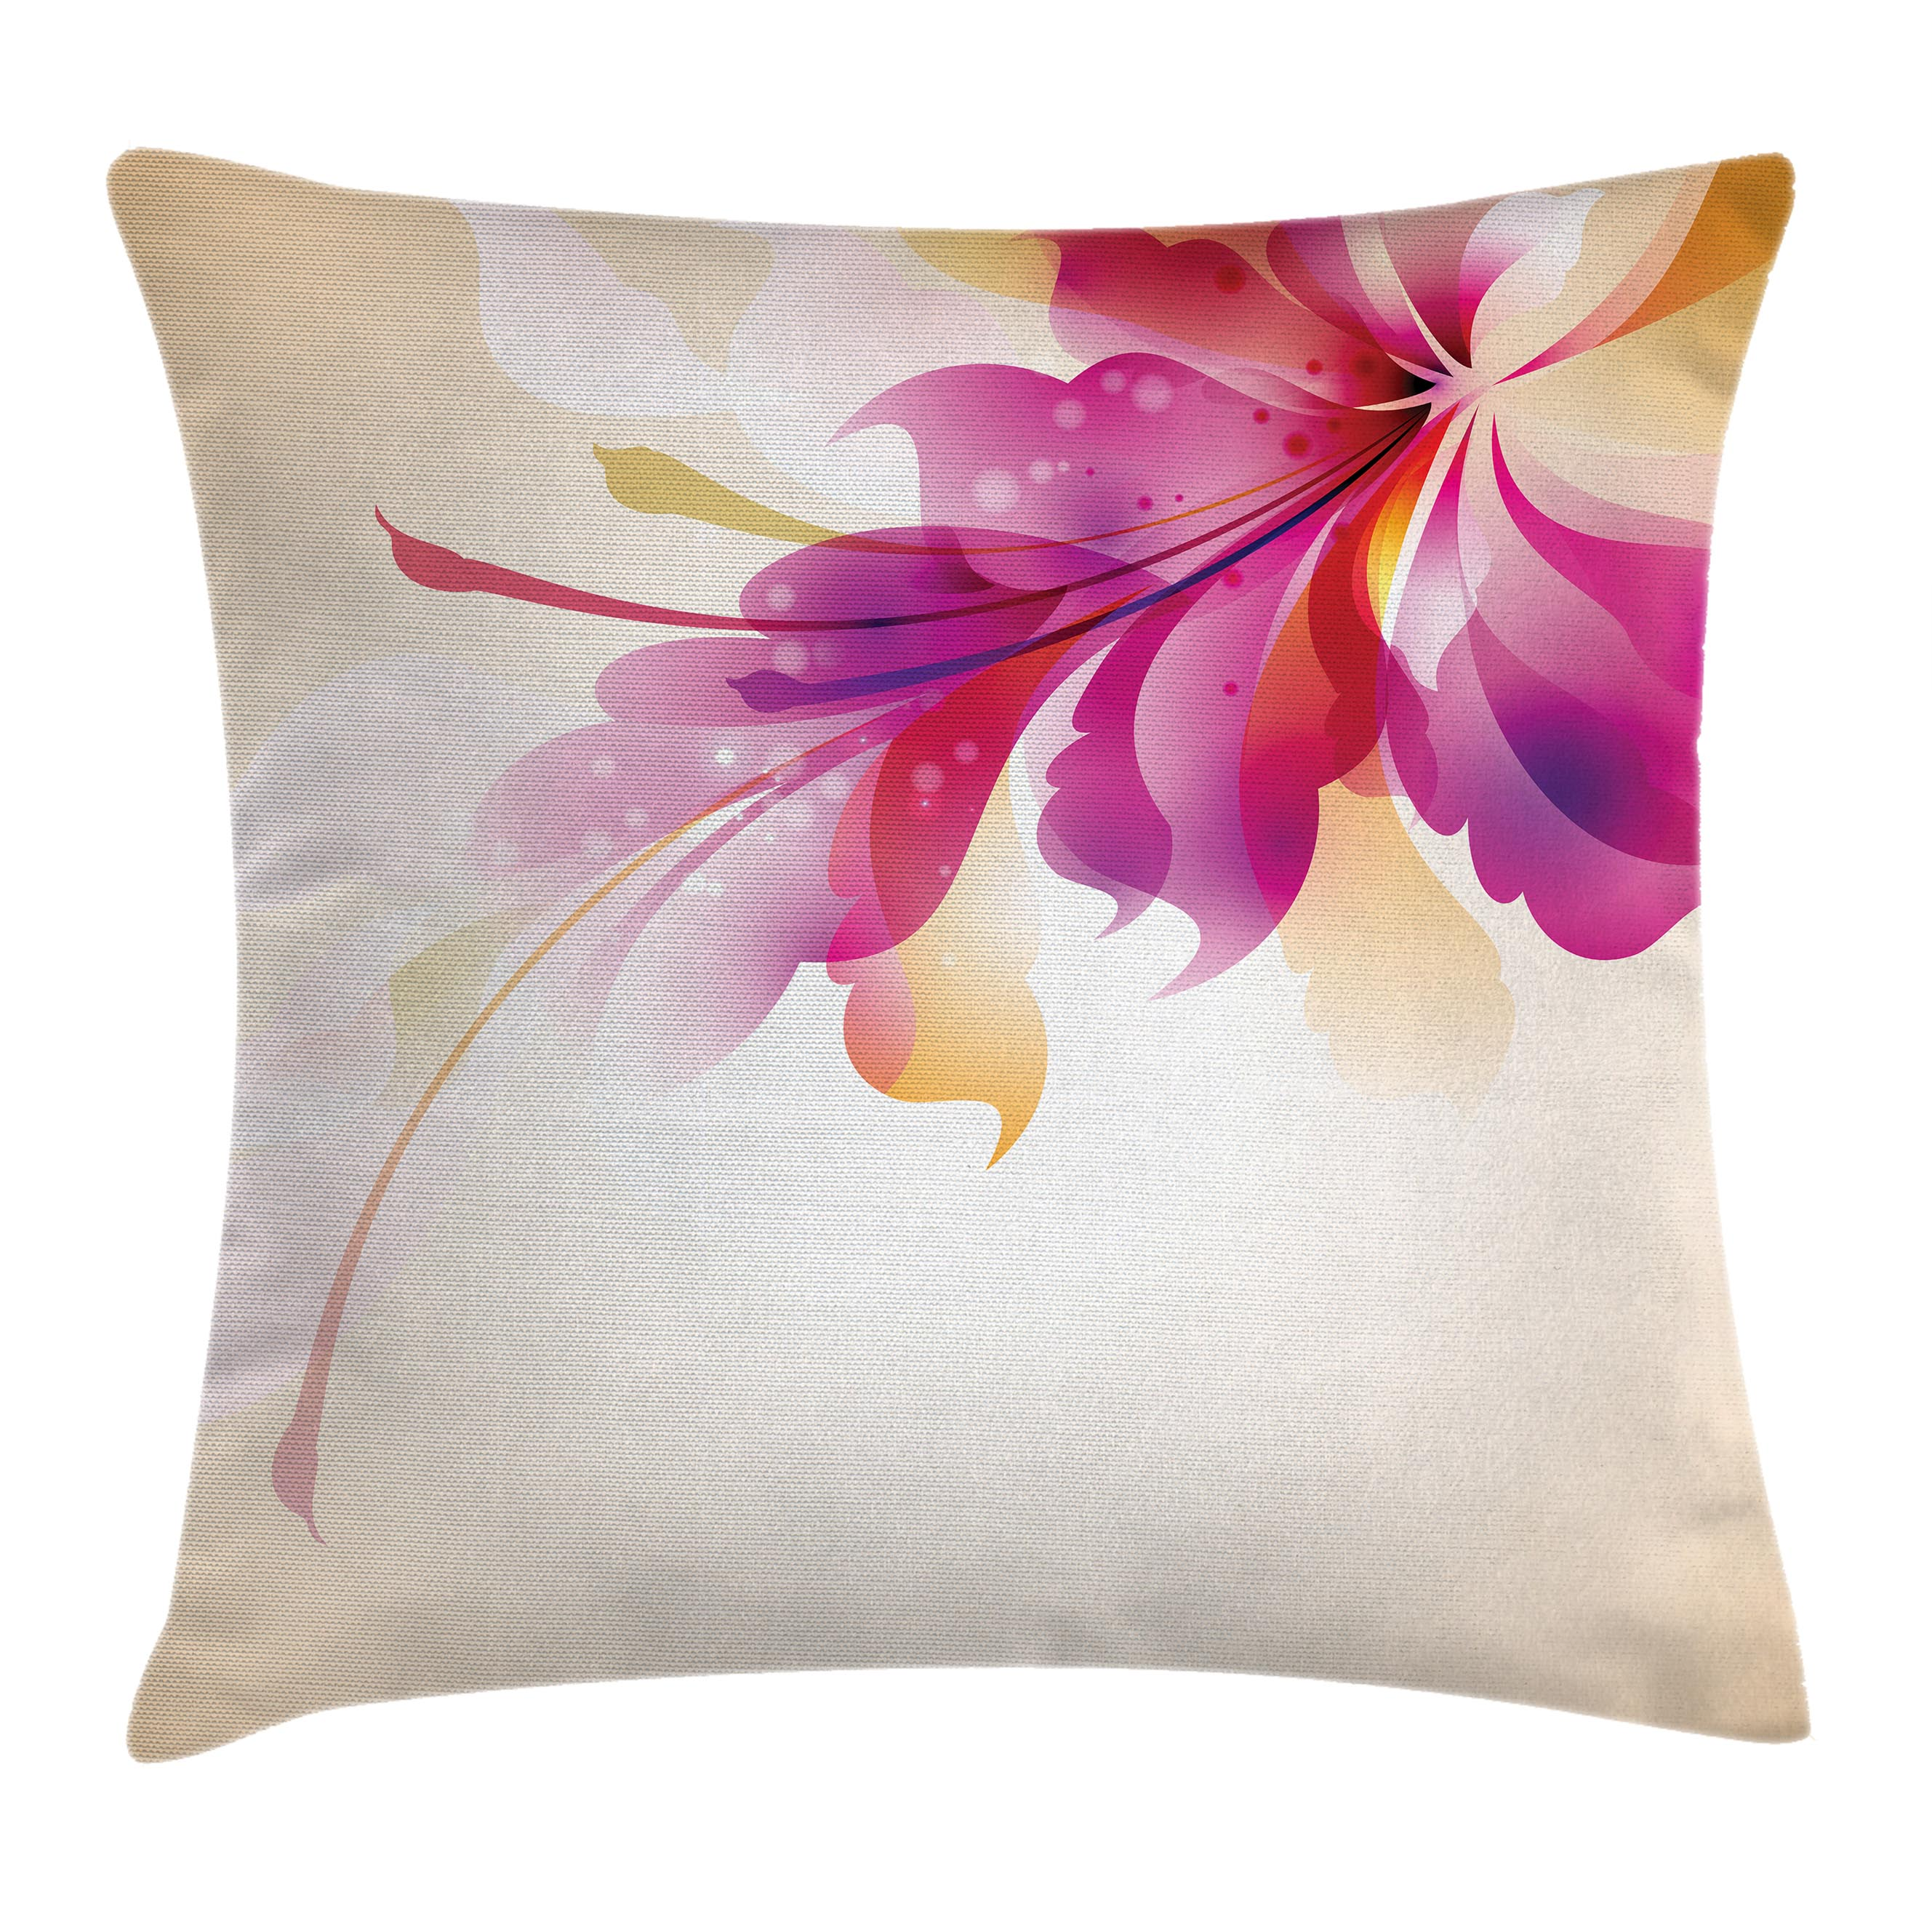 Abstract Decor Throw Pillow Cushion Cover, Artistic Floral Design with Bright Points and Leaves Artwork, Decorative Square Accent Pillow Case, 16 X 16 Inches, Purple Pink and Golden, by Ambesonne